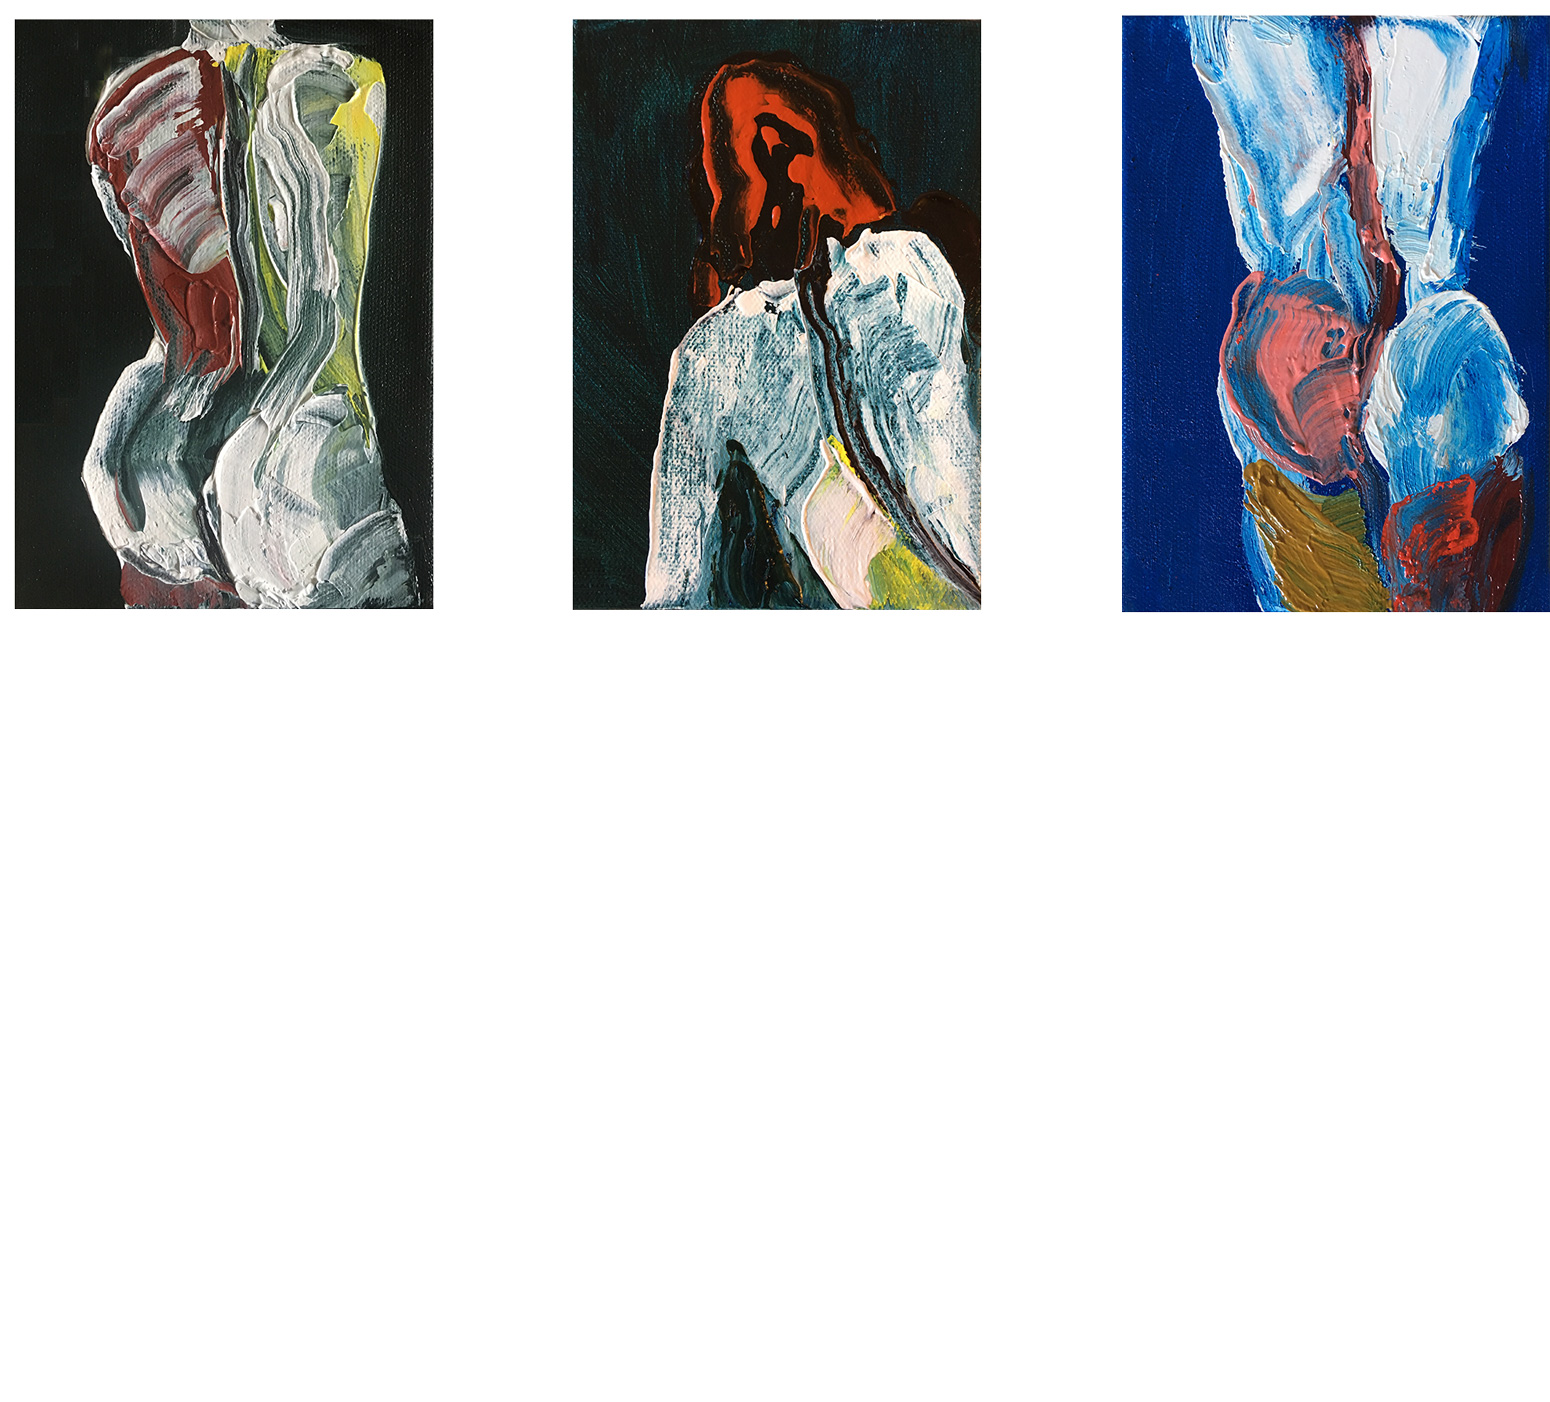 (left-to-right)   Events in the Body: Torso in Deep Green    Events in the Body: Torso in Prussian Blue    Events in the Body: Torso in Cerulean and Paris Blue   2018 Oil on canvas 7x5 in.